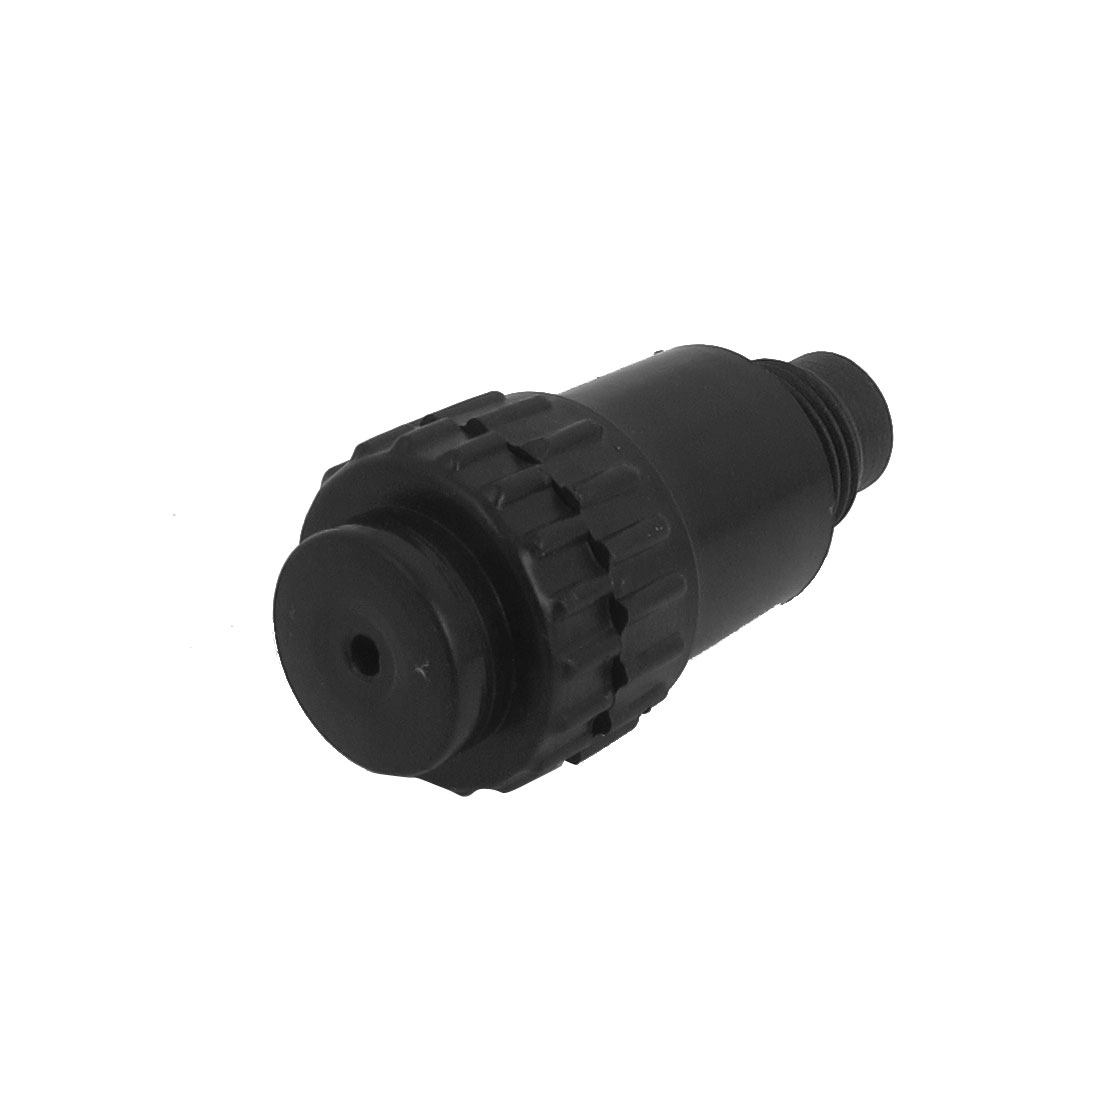 16mm Thread Diameter Oil Plug Air Compressor Spare Fittings Black